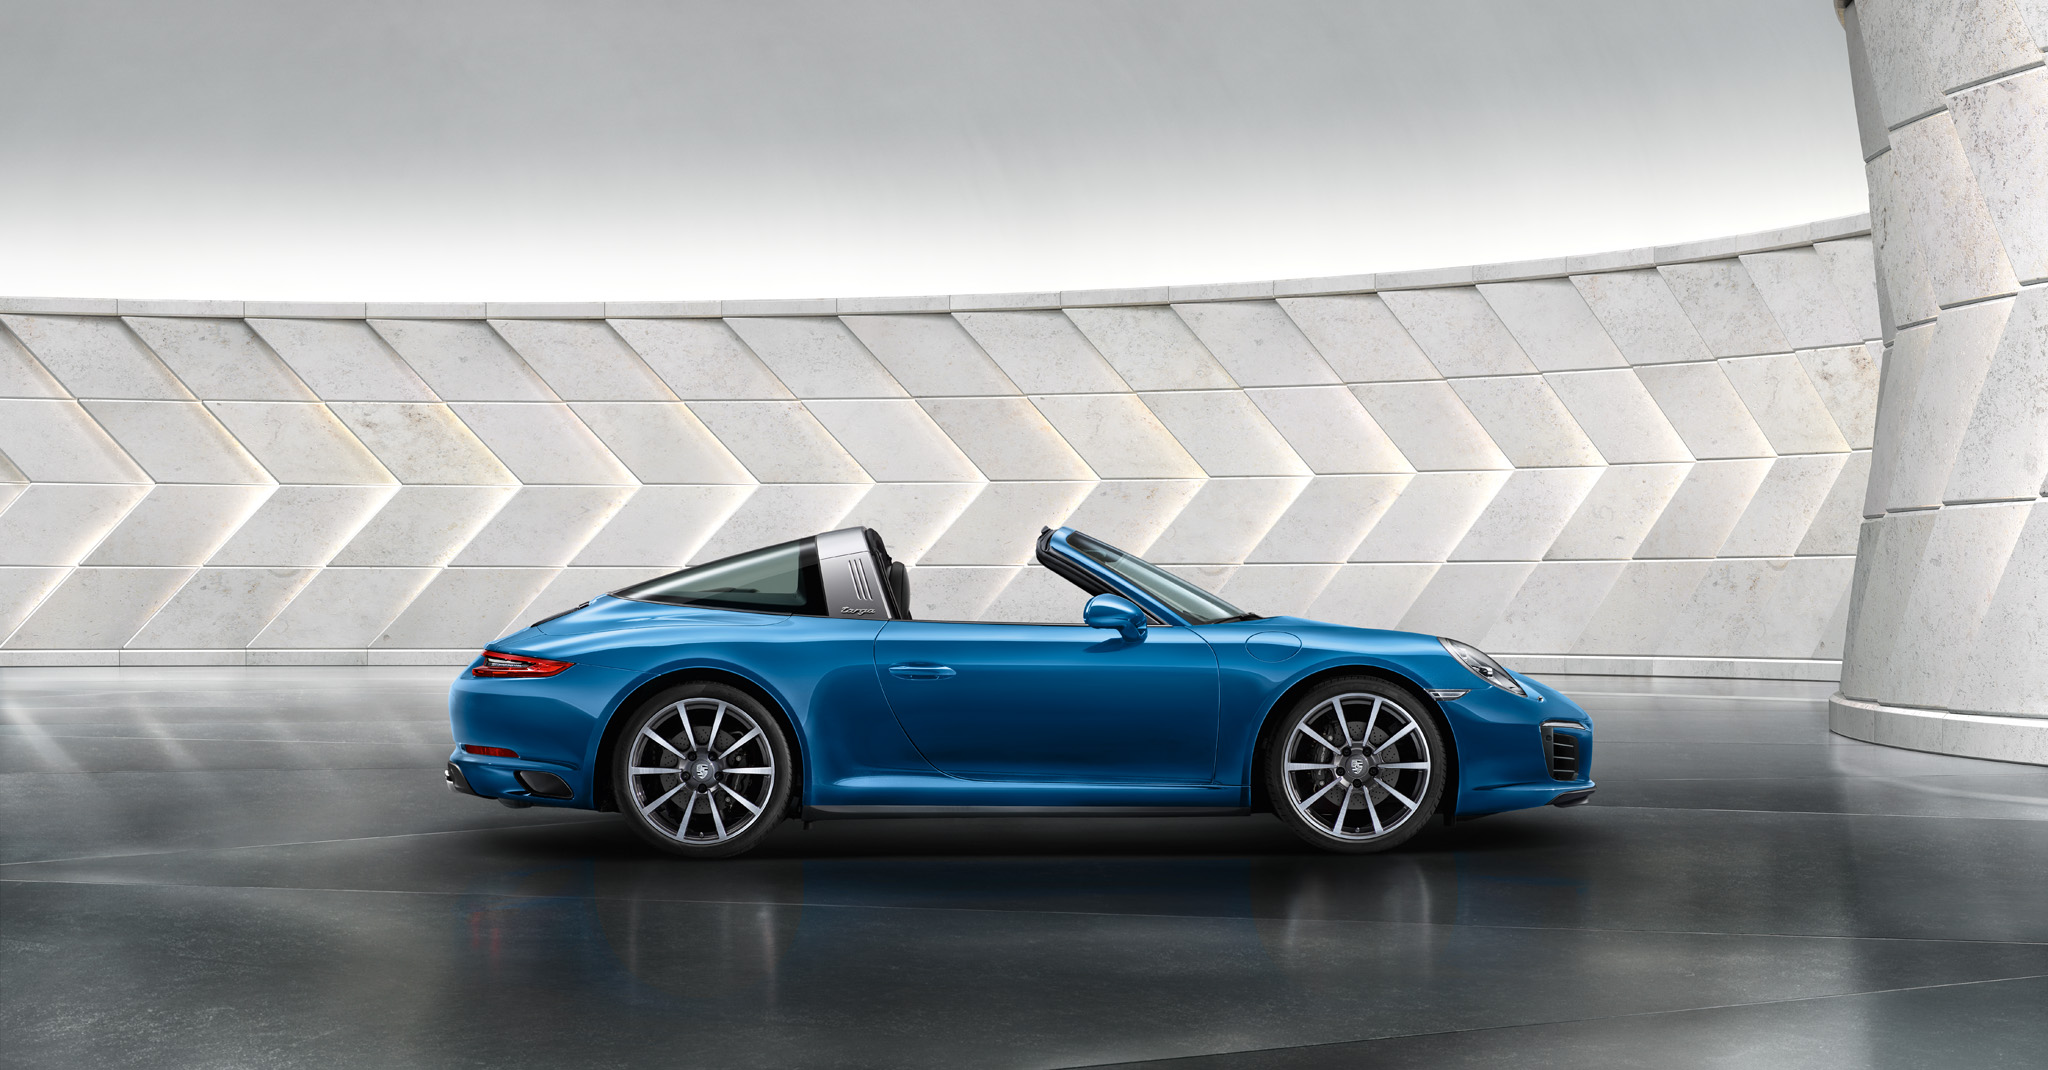 The new 911 Targa 4. Ever ahead.